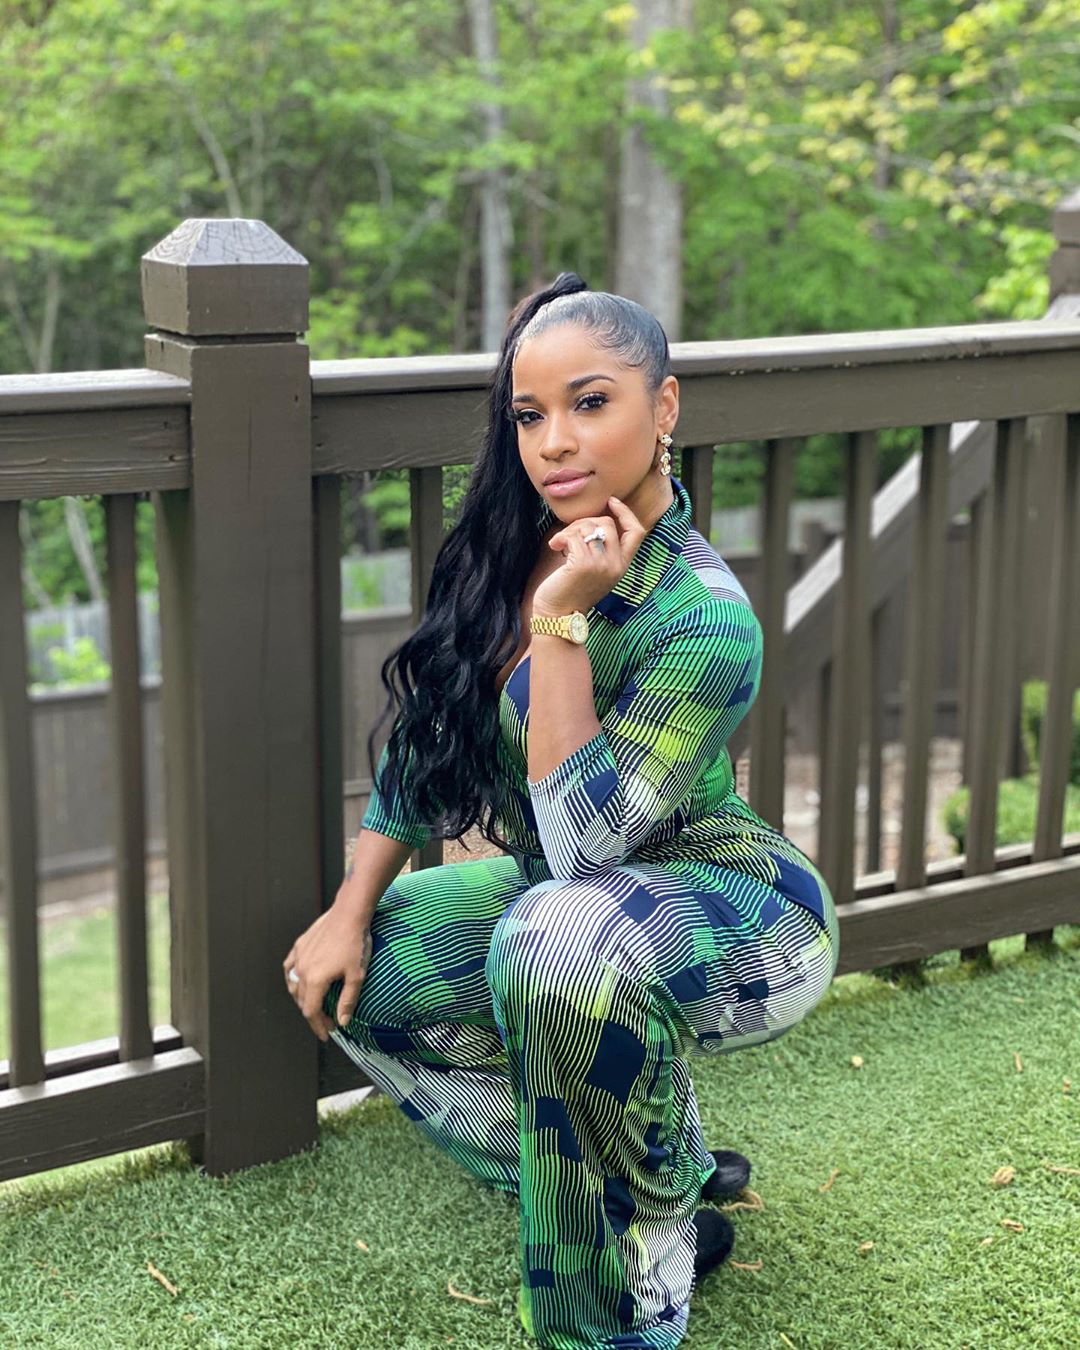 Toya Johnson Makes Fans Happy With The Second Episode Of 'We In The Kitchen' Series - Watch In Here!